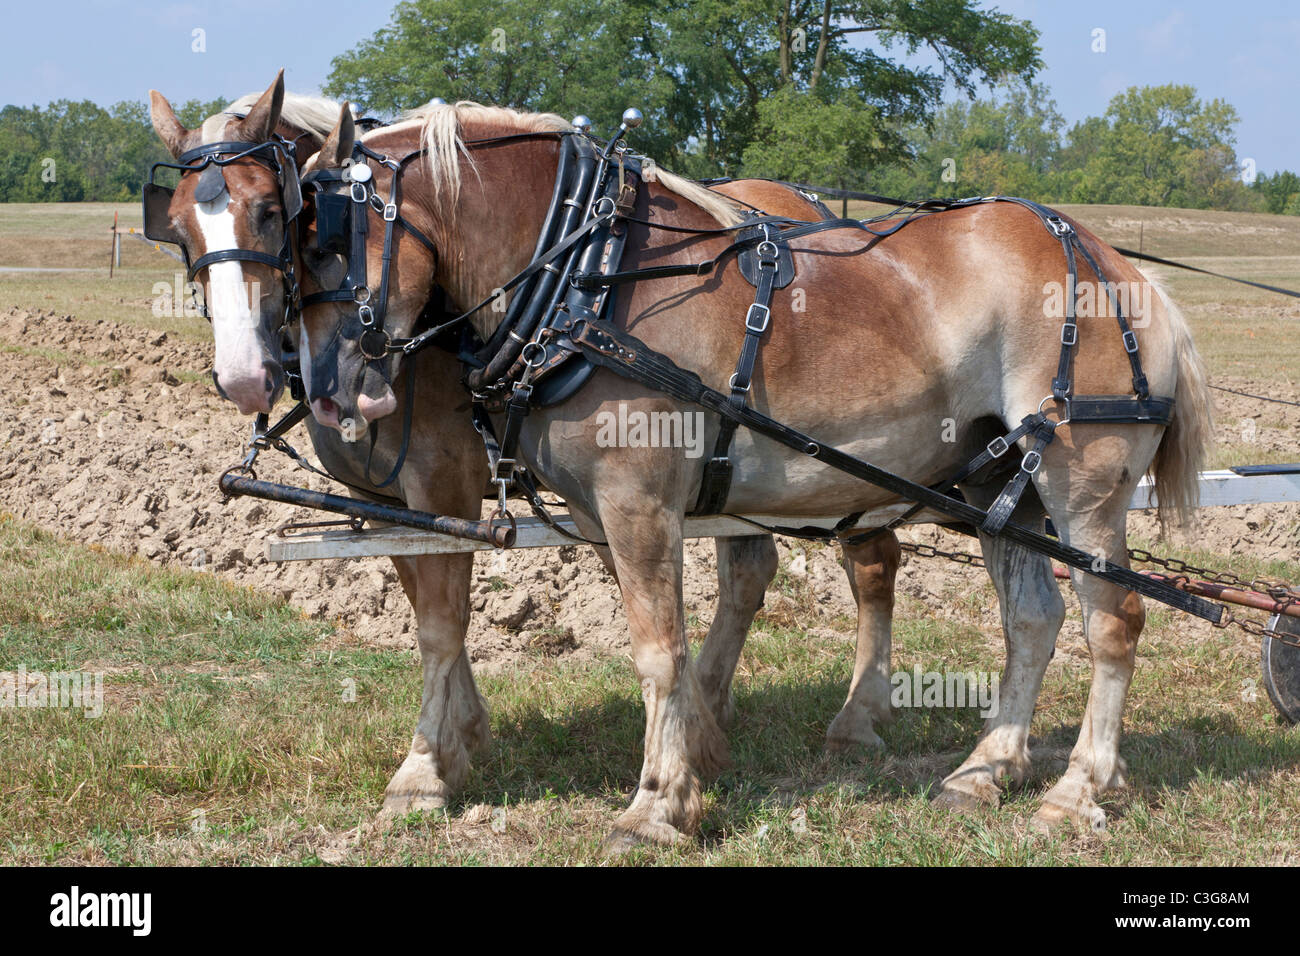 Two horse draft team to be used to plow a field - Stock Image